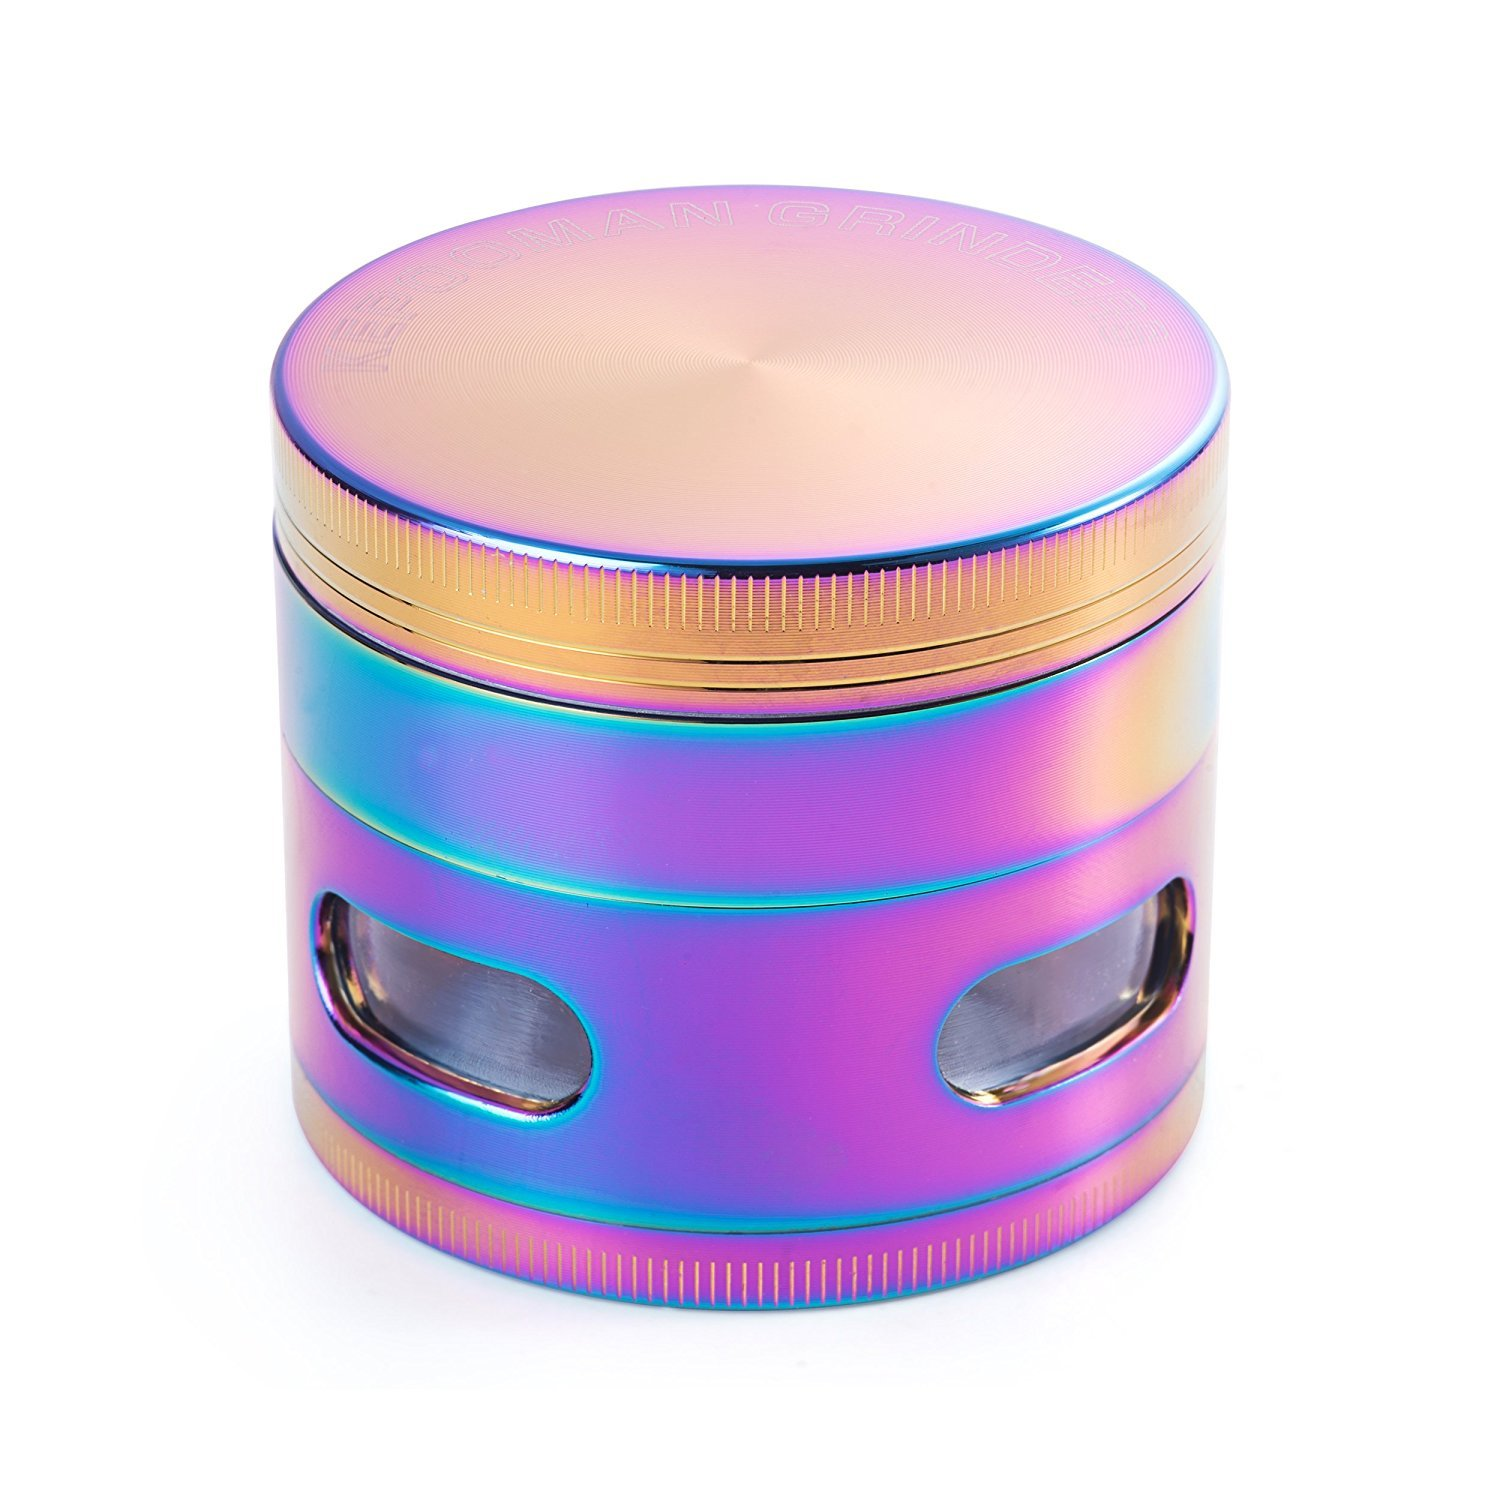 KepooMan Colorful Metal Zinc alloy Tobacco Spice Herb Grinder-Rainbow Metal, 52 mm-Diameter, 4 Piece B01M4KPQNY